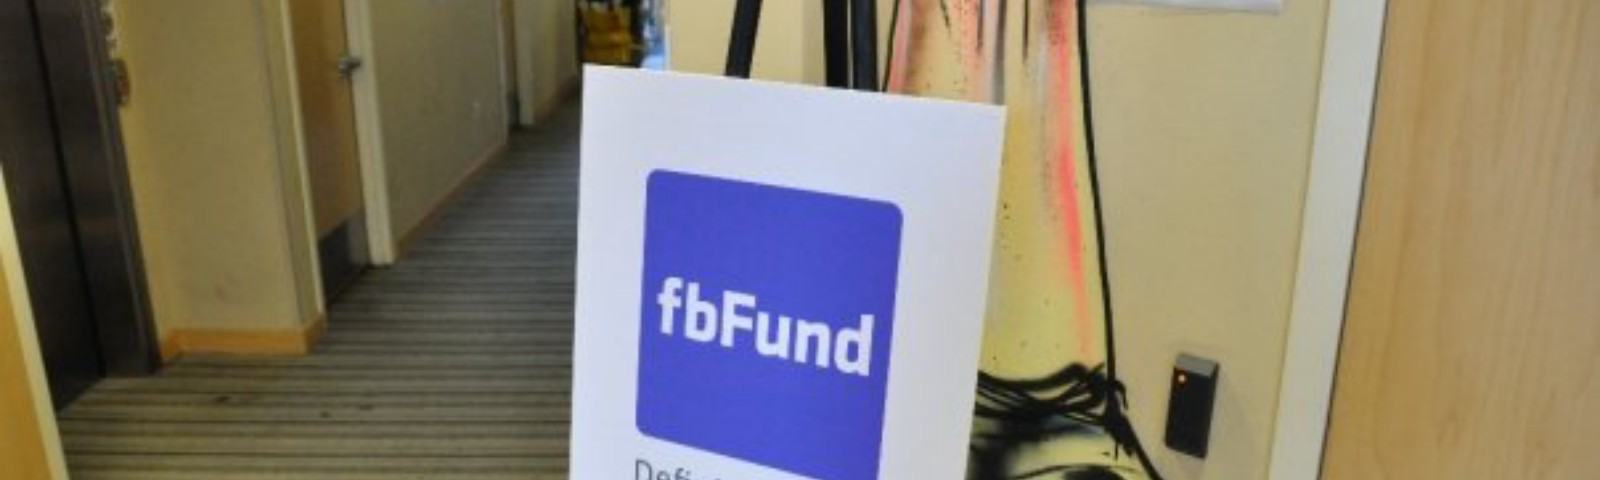 fbFund: The investment fund you've never heard of that helped start Lyft